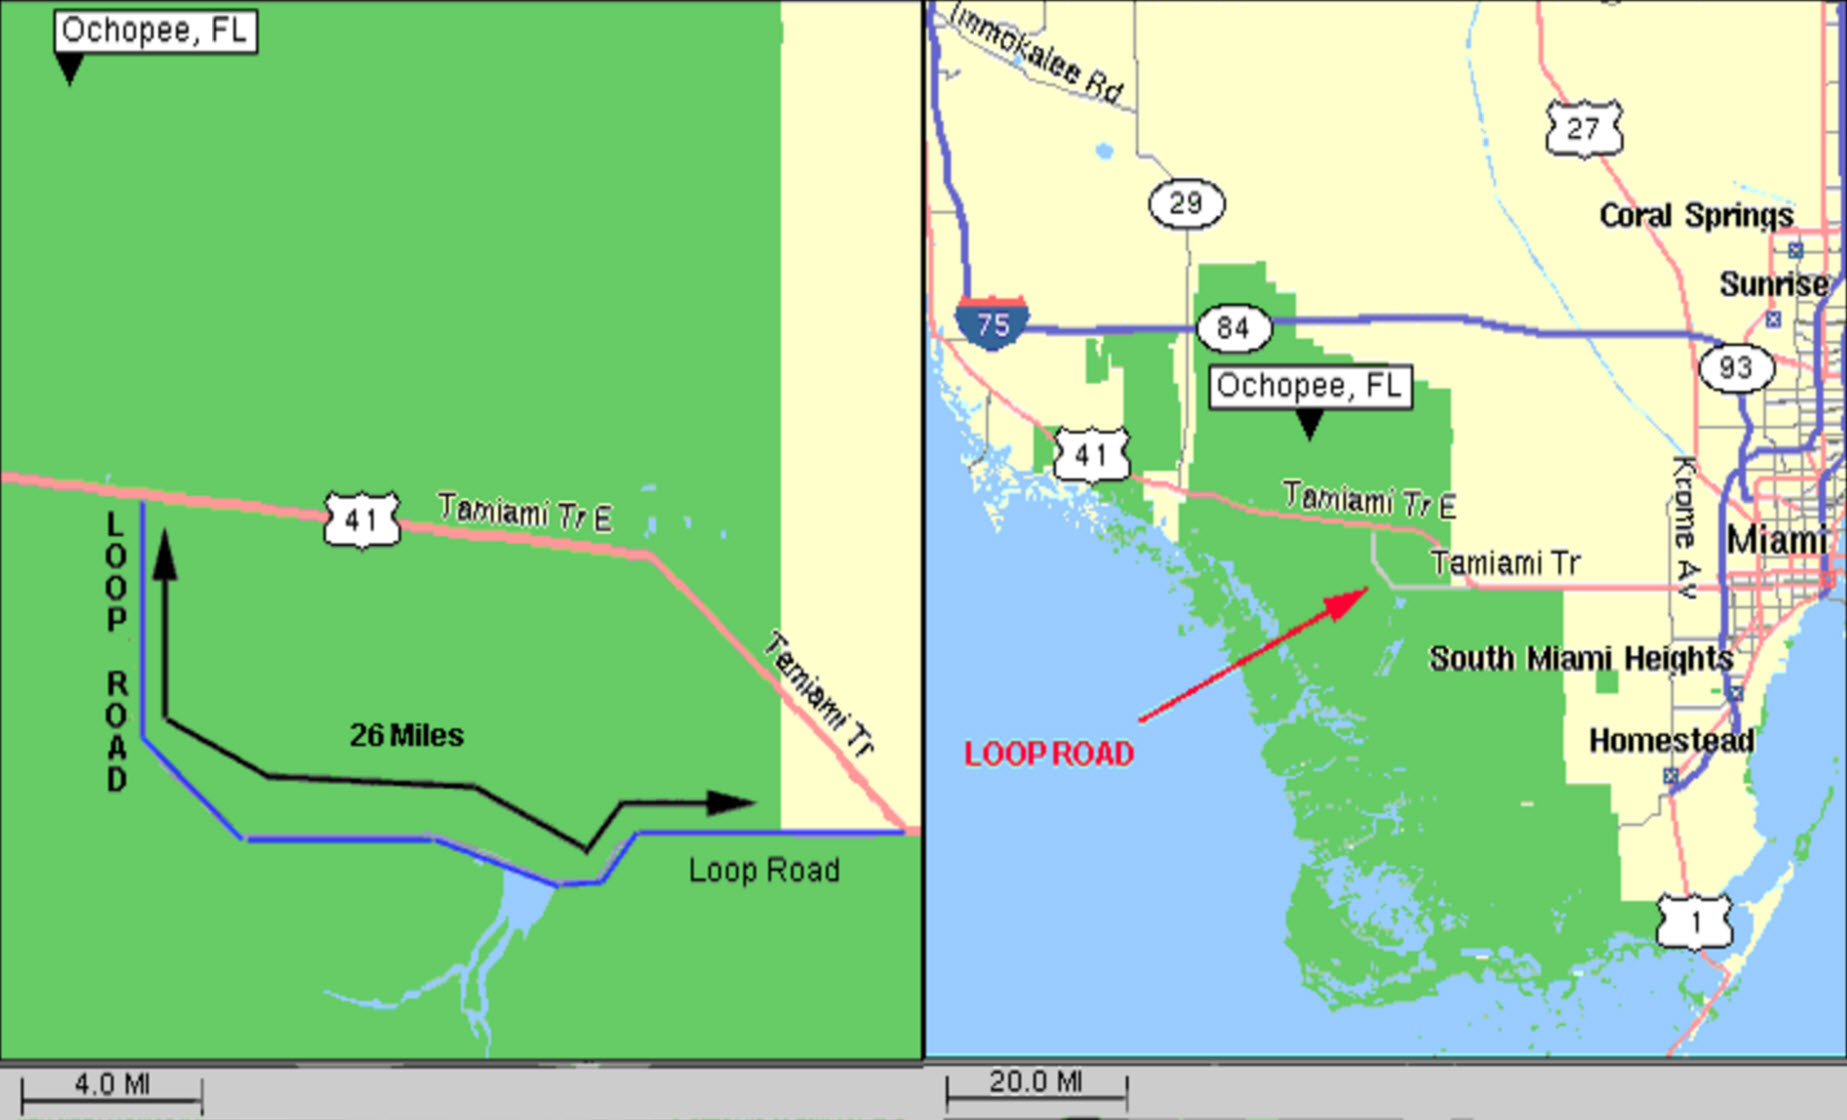 Tamiami Trail Officially Opened In 1928 - Tamiami Trail Florida Map